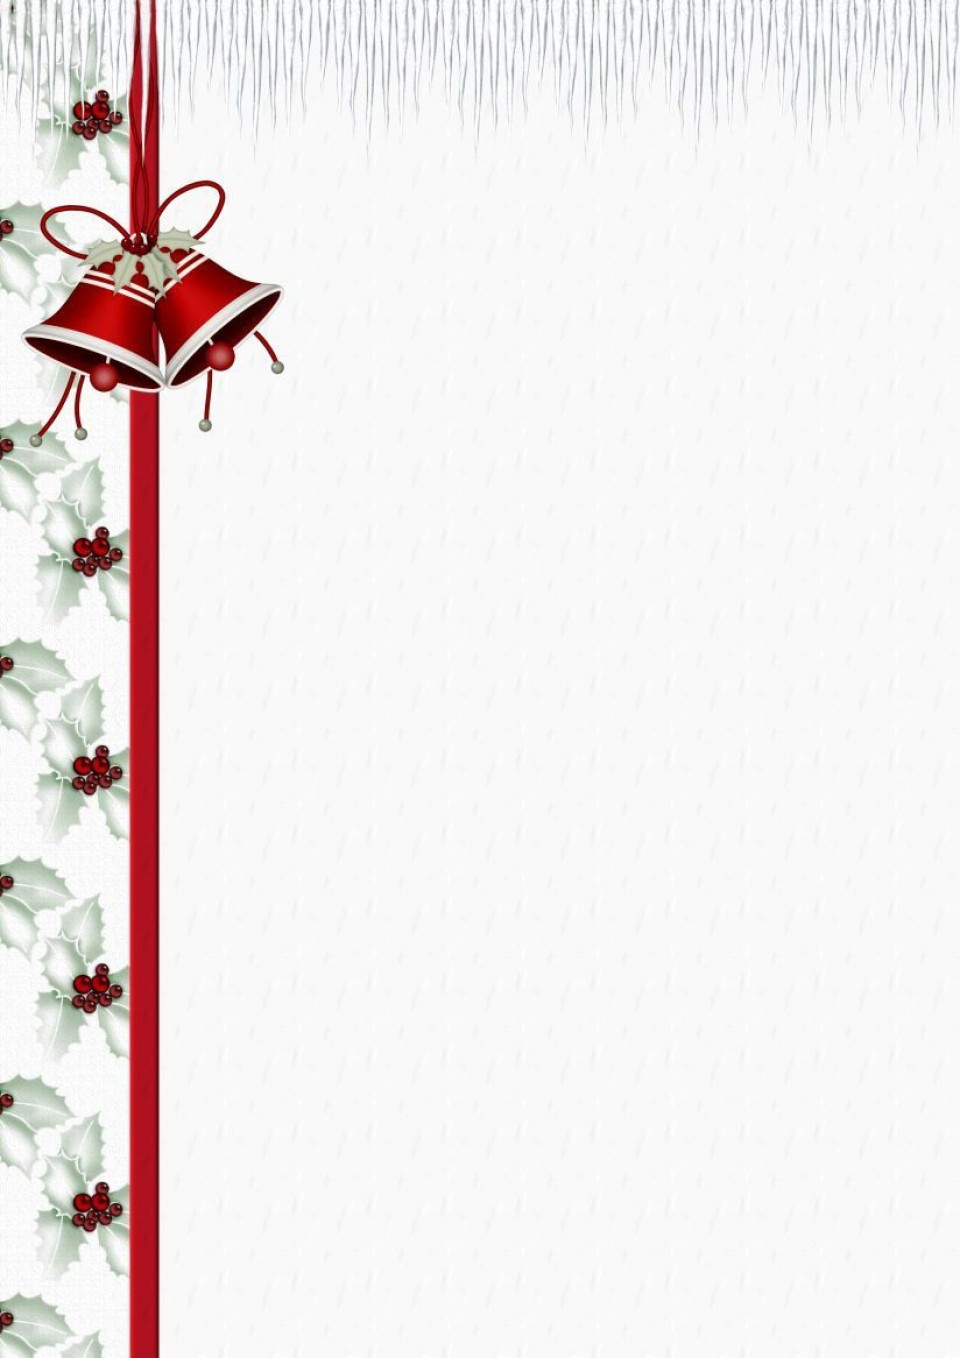 004 Simple Free Holiday Stationery Template For Word Highest Clarity 960